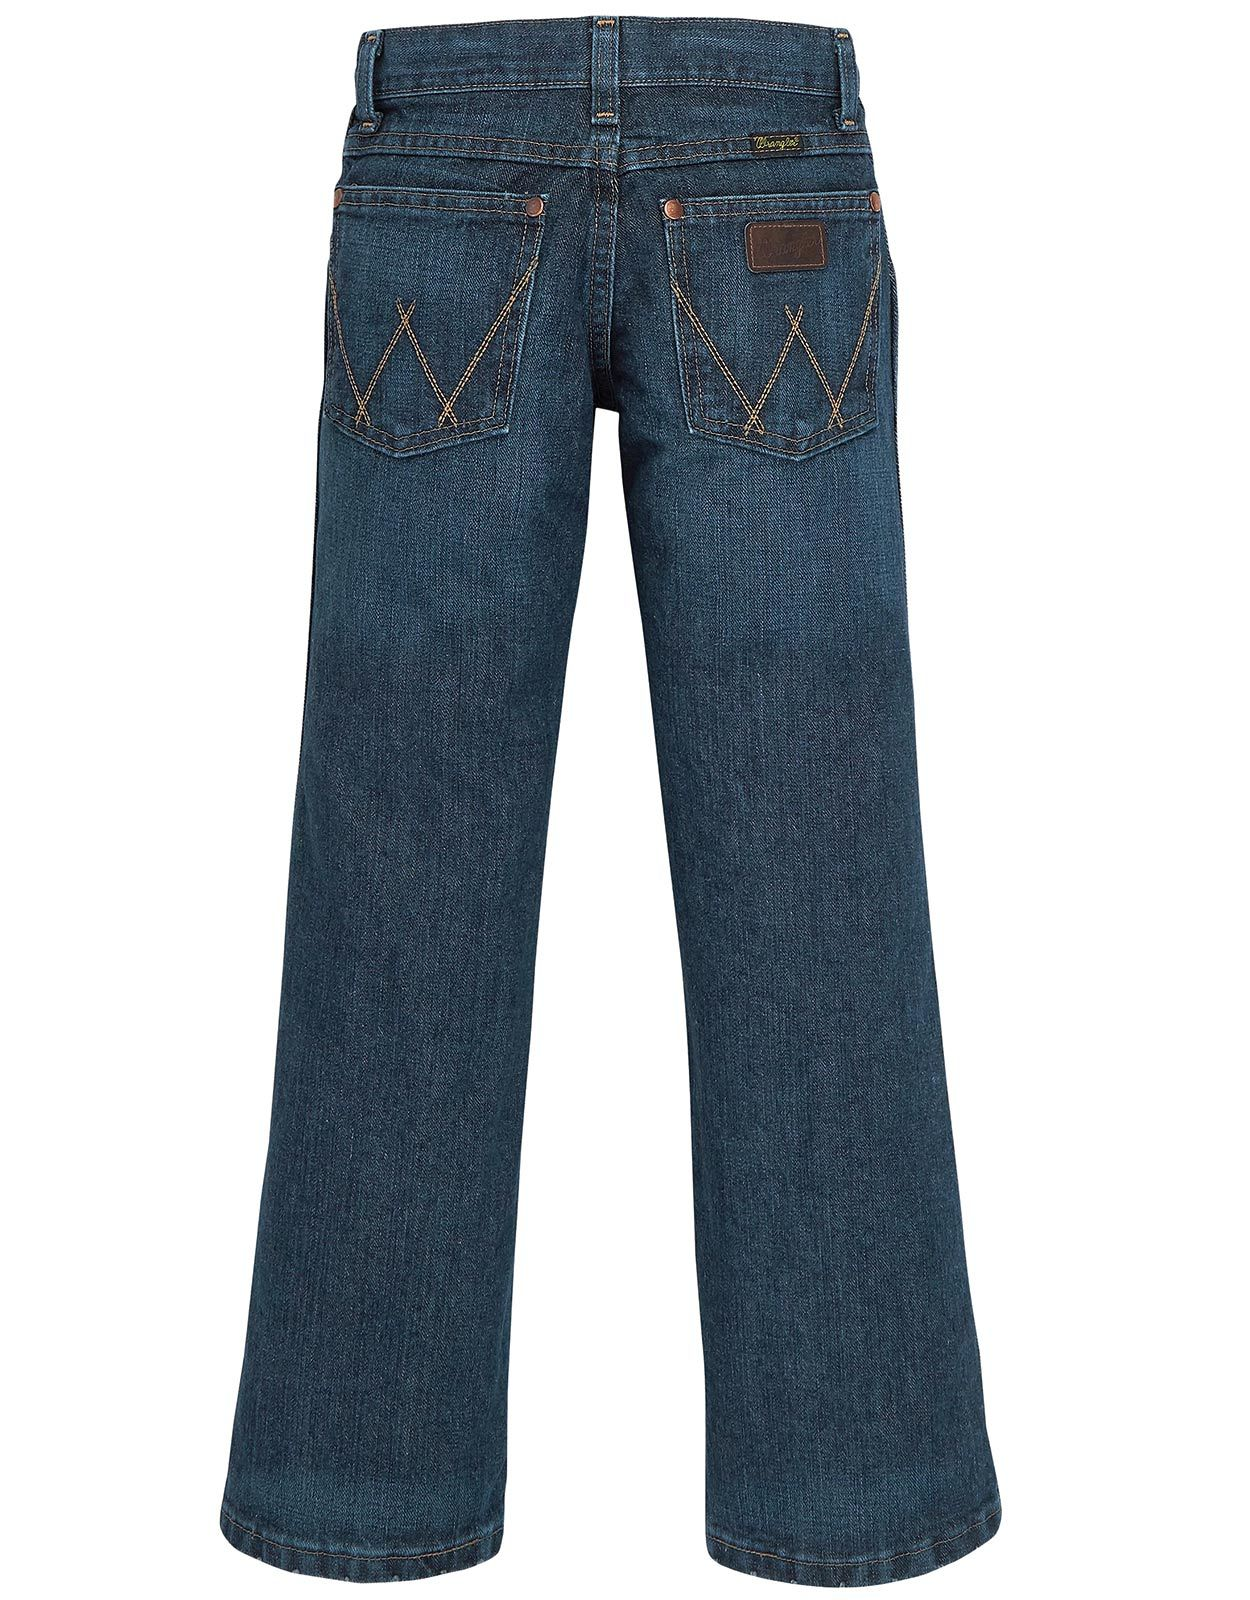 Wrangler Boy's Retro Low Rise Relaxed Fit Straight Leg Jeans (Sizes 8-20) - Everyday Blue